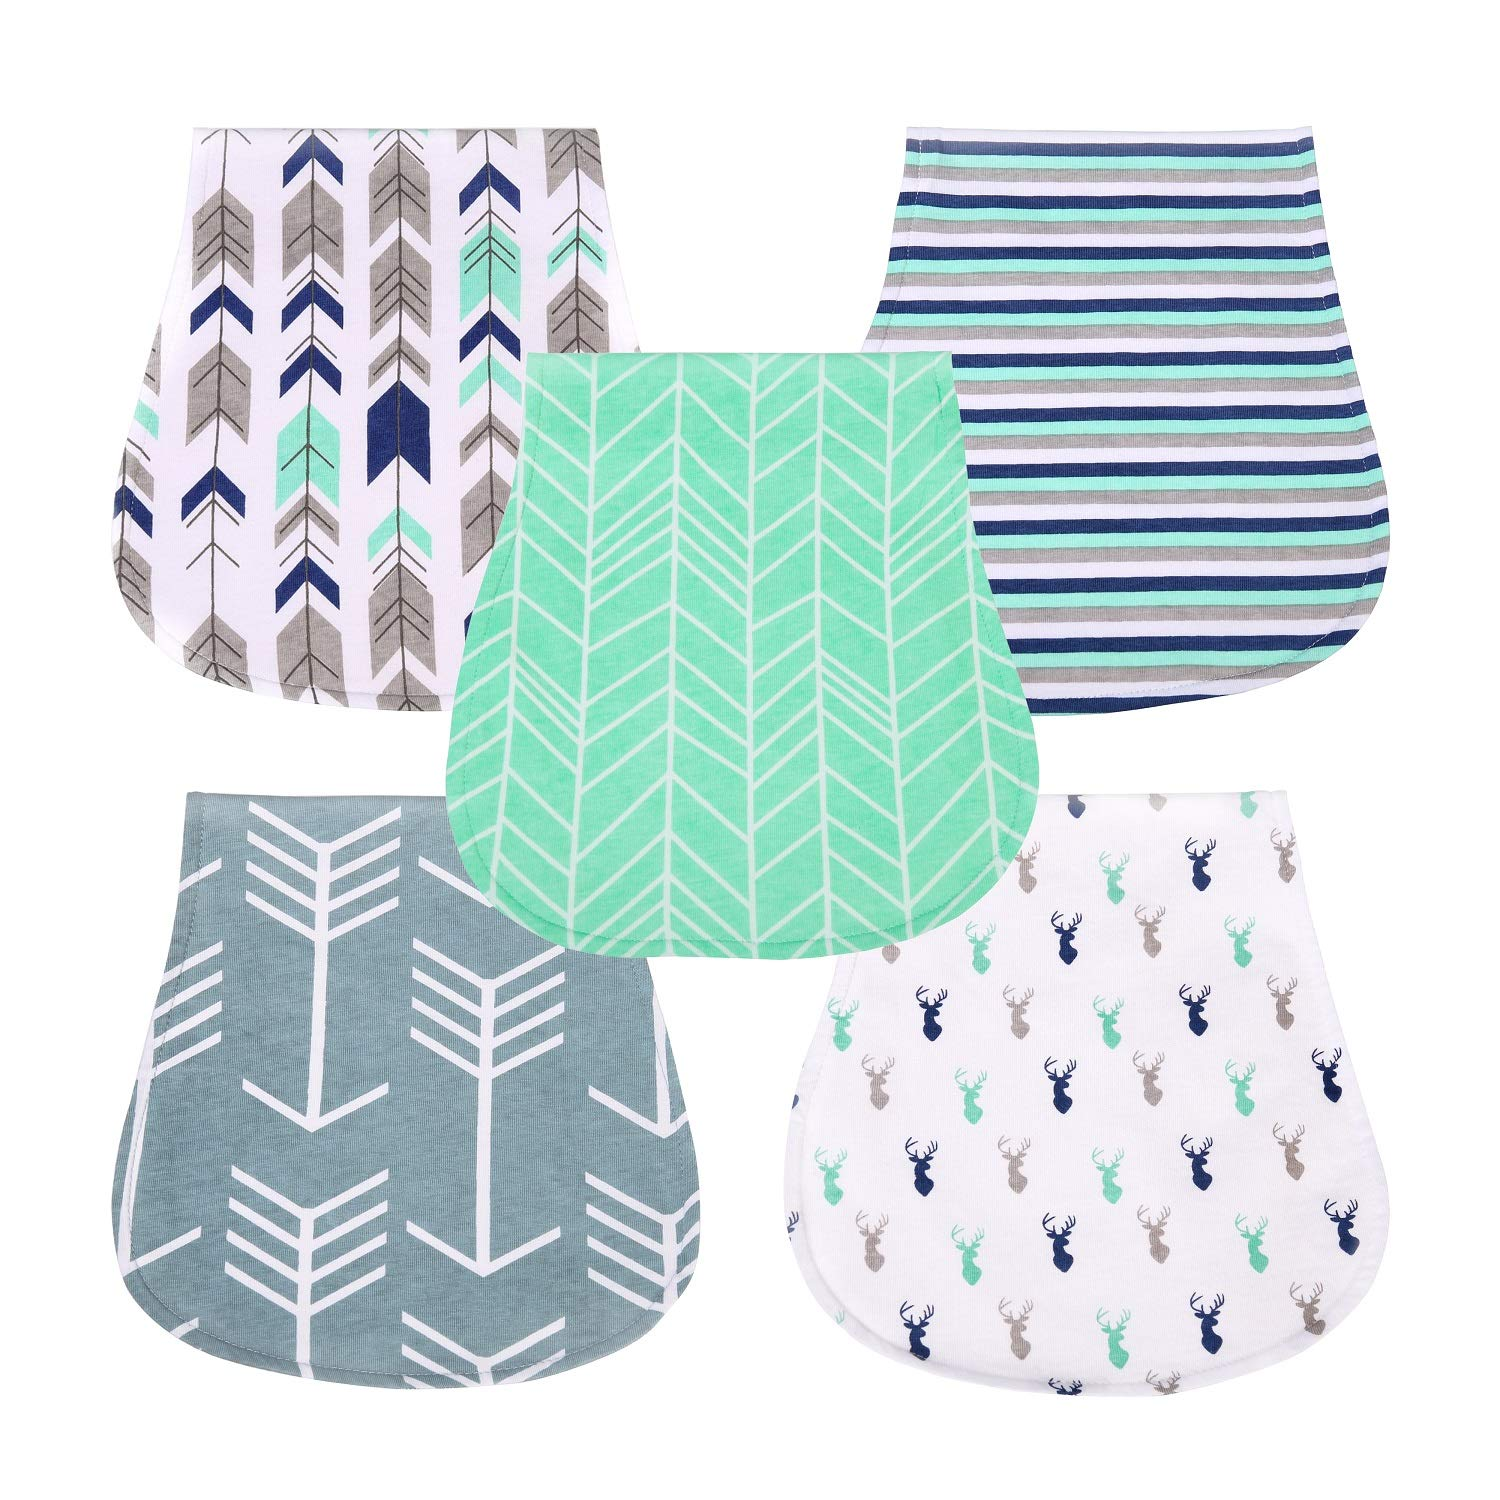 OWMMIZ Baby Burp Cloths for Boys and Girls, Organic Cotton for Baby Toddler Teething Showers Gift Set Pack of 5